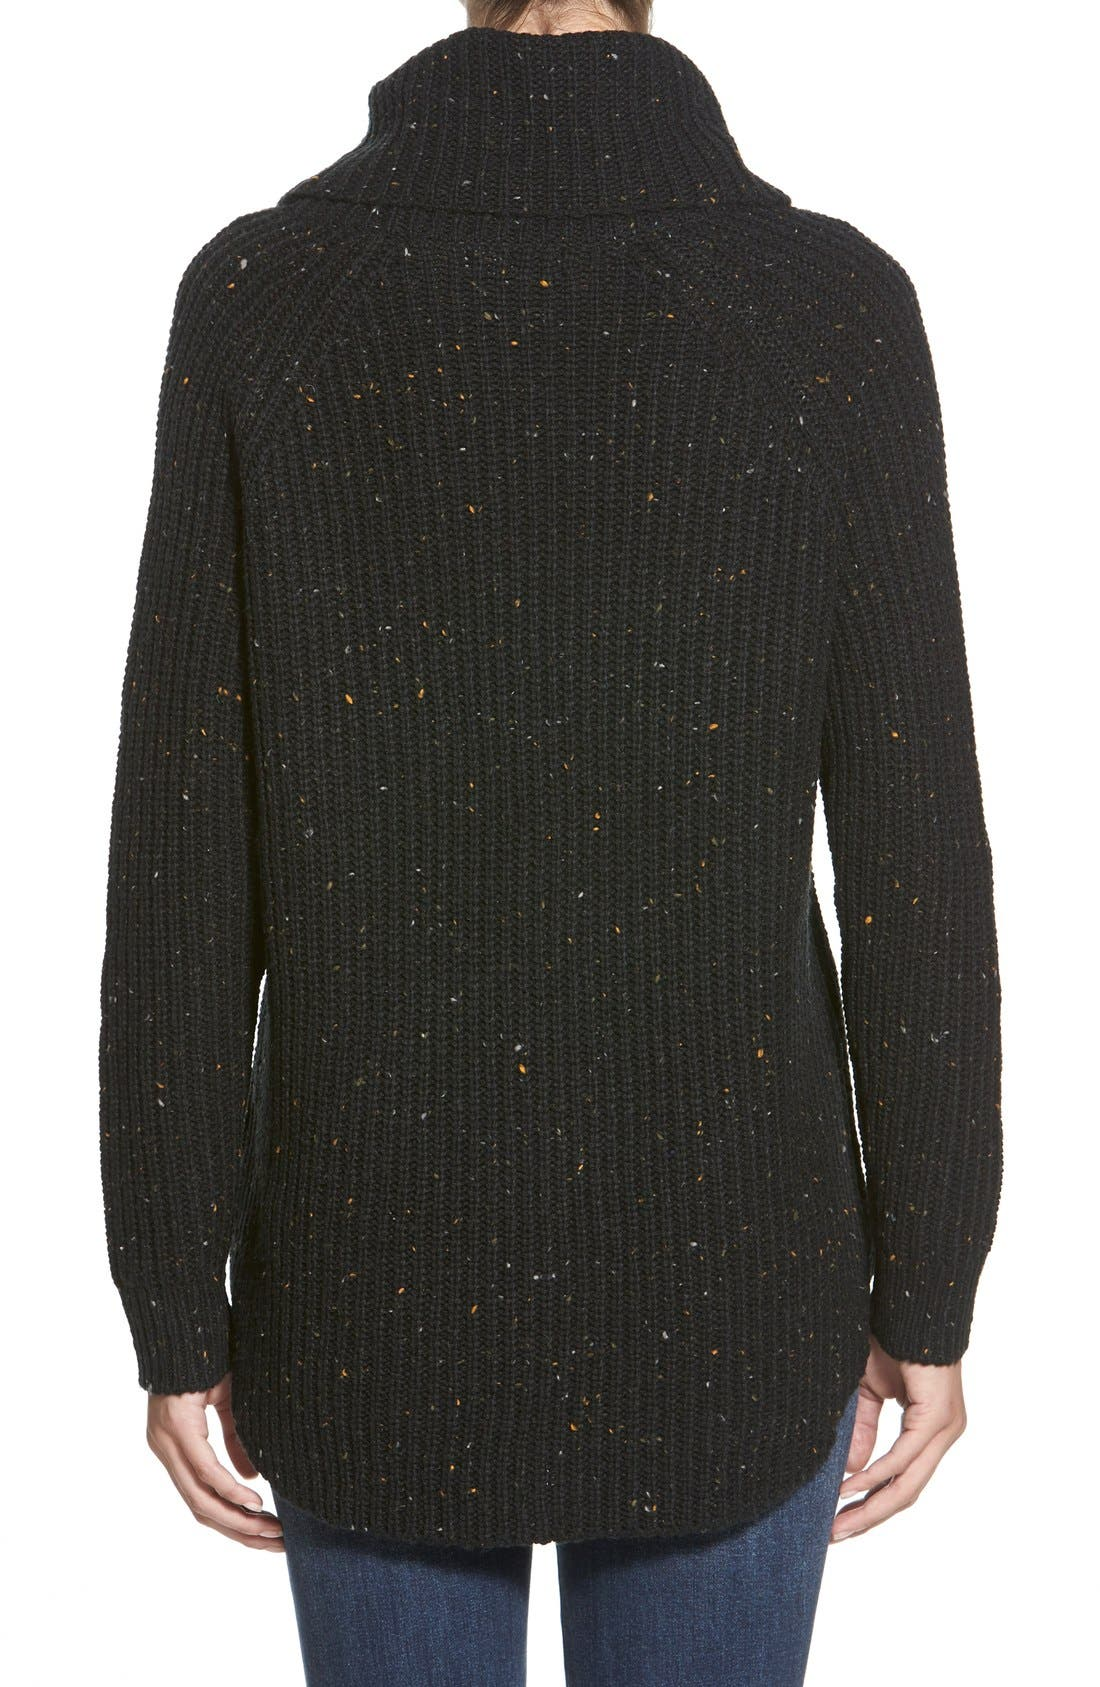 Turtleneck Sweater,                             Alternate thumbnail 2, color,                             001